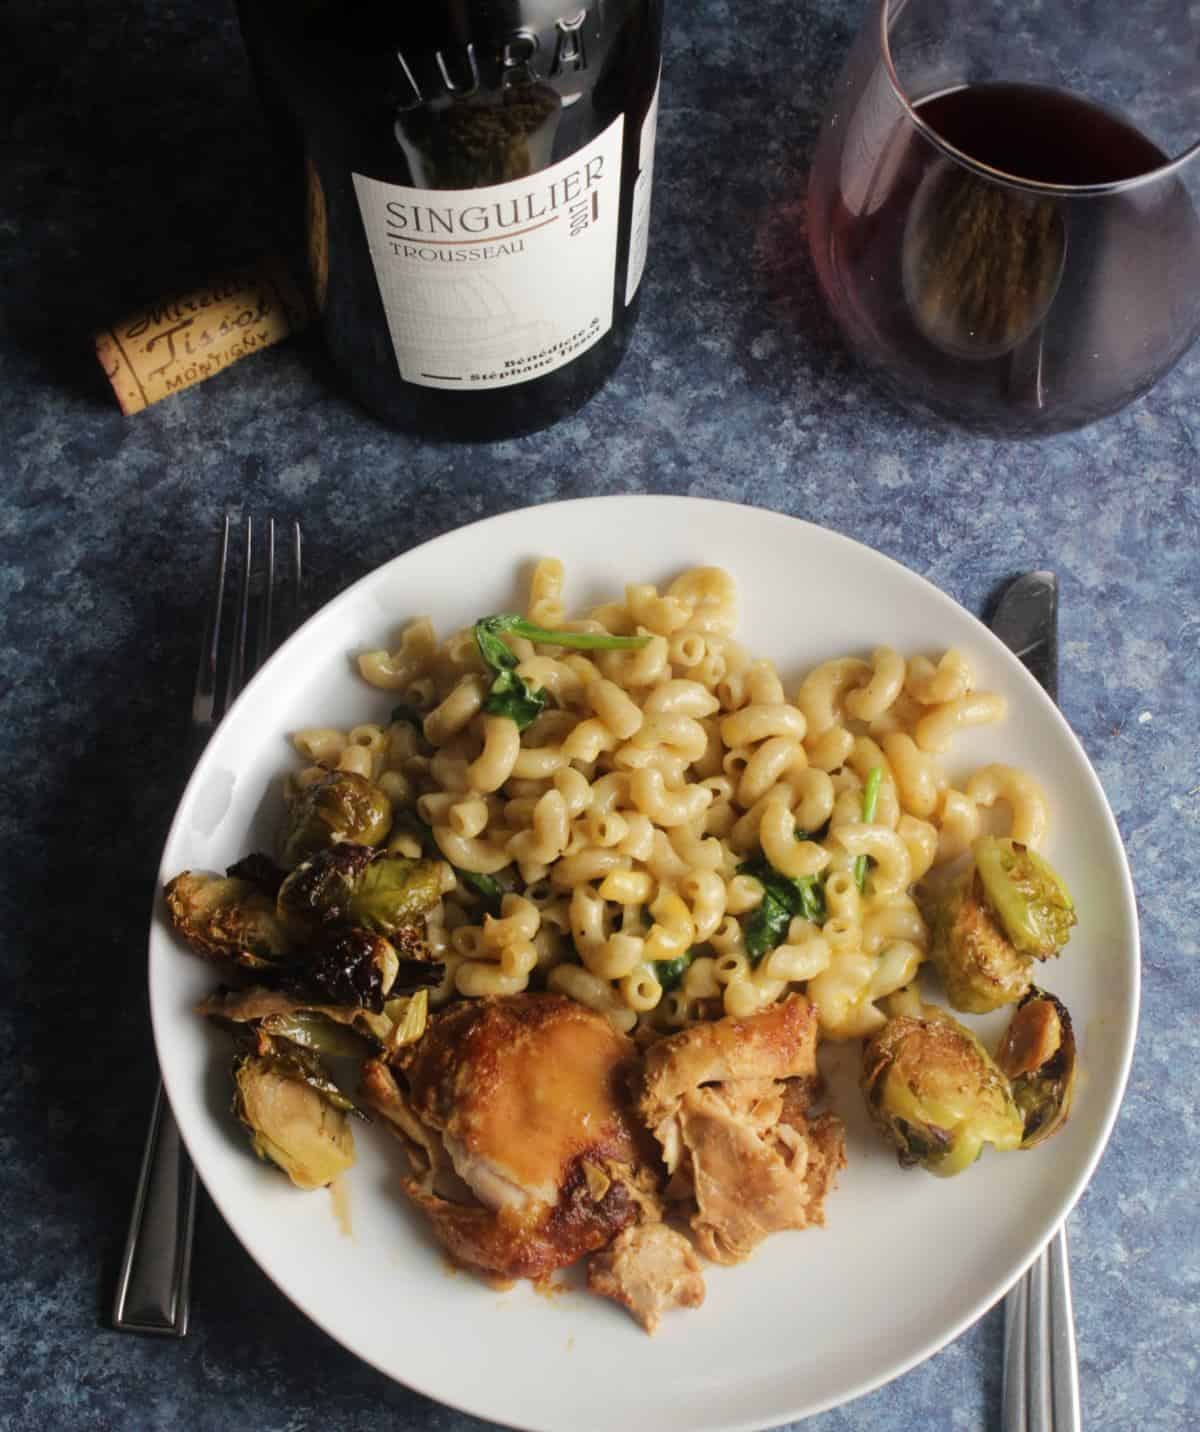 BBQ Chicken Thighs with a red wine from France.